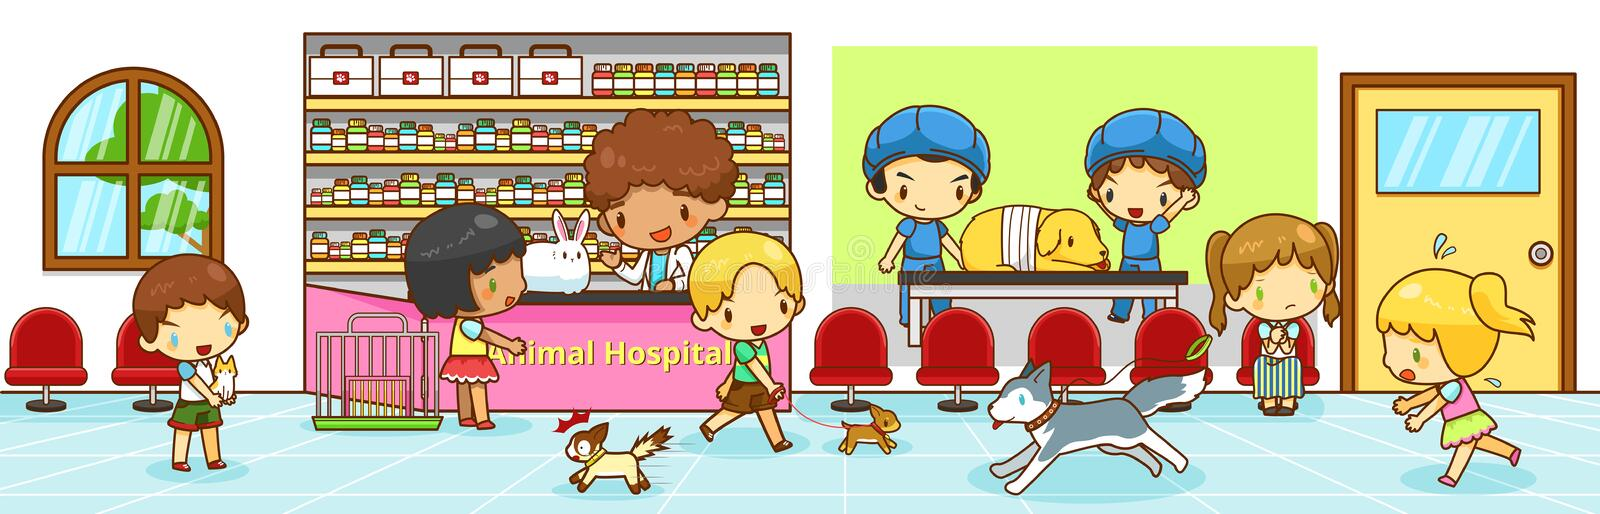 Cute Cartoon Animal Hospital Interior Scene With Owners